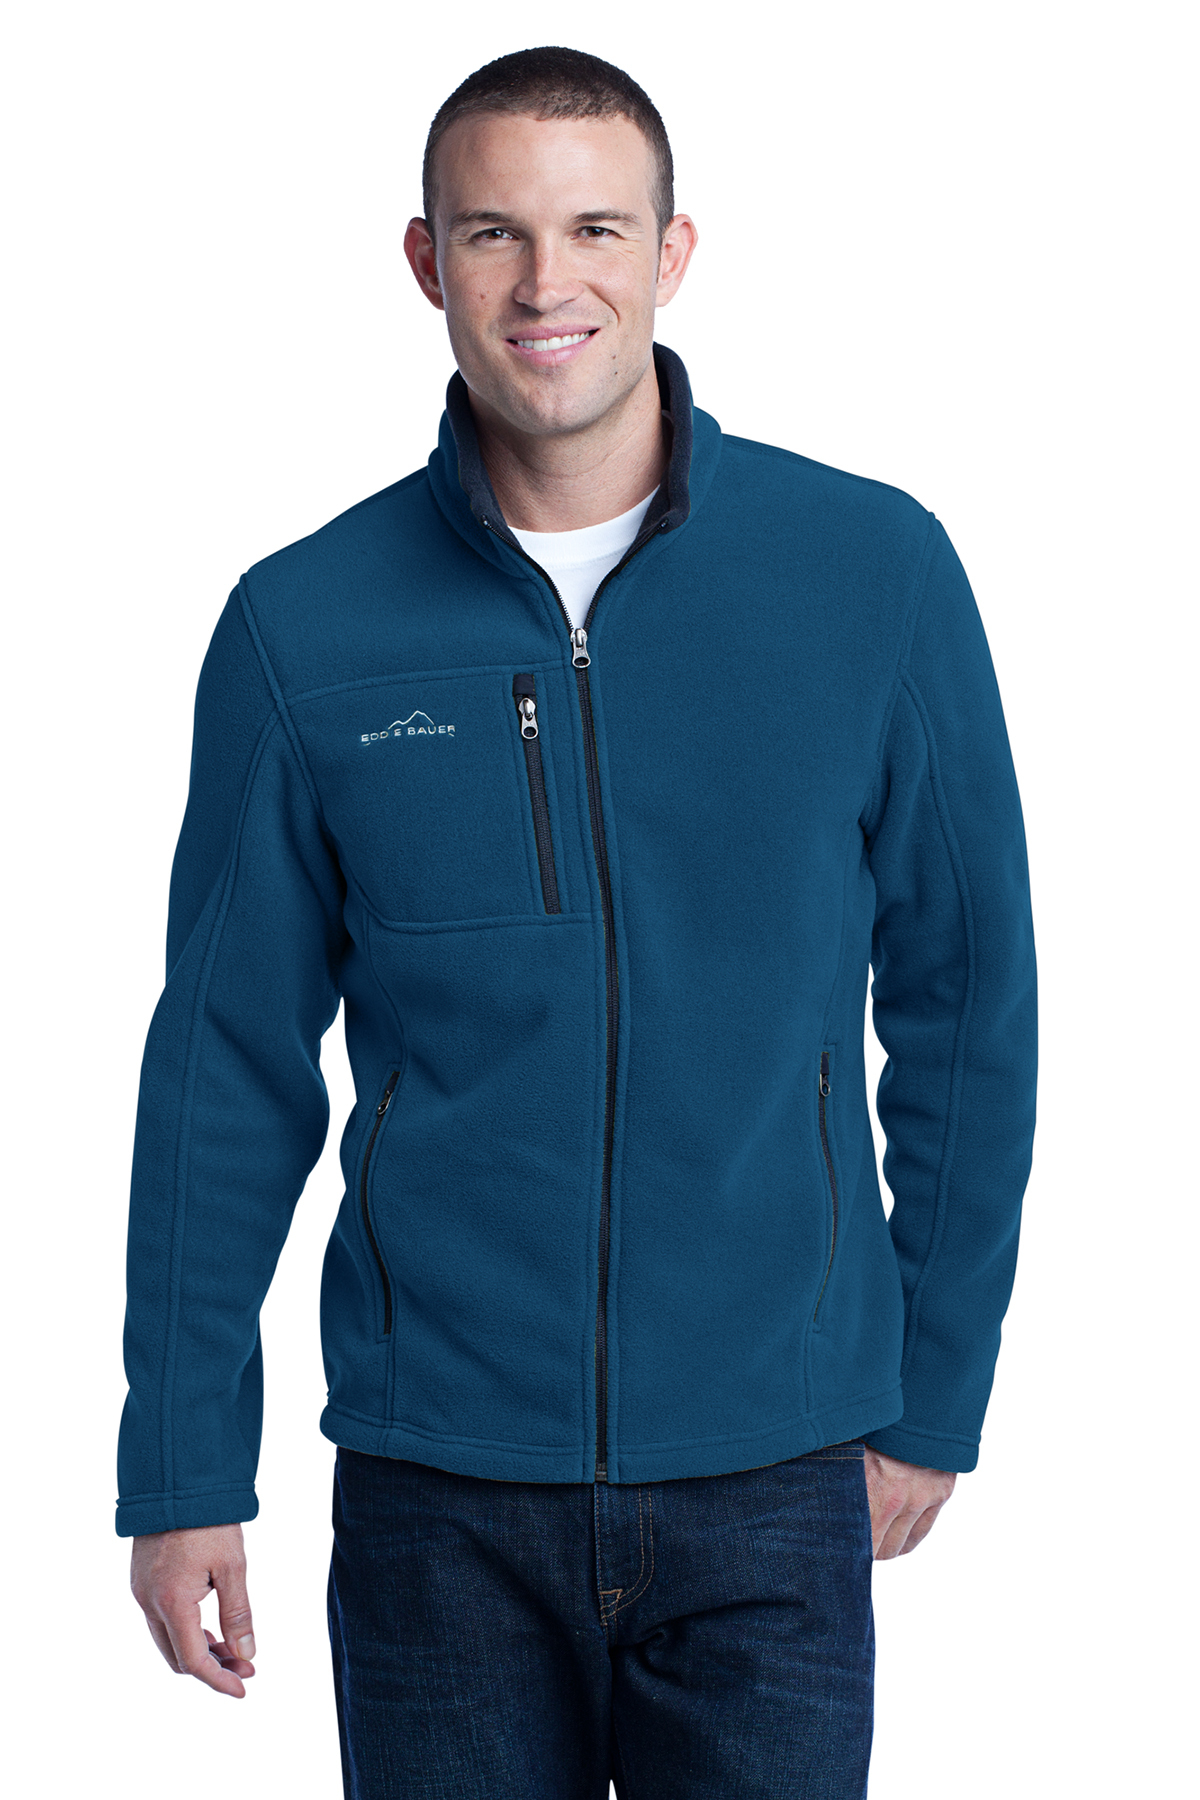 Eddie Bauer - Full-Zip Fleece Jacket. EB200